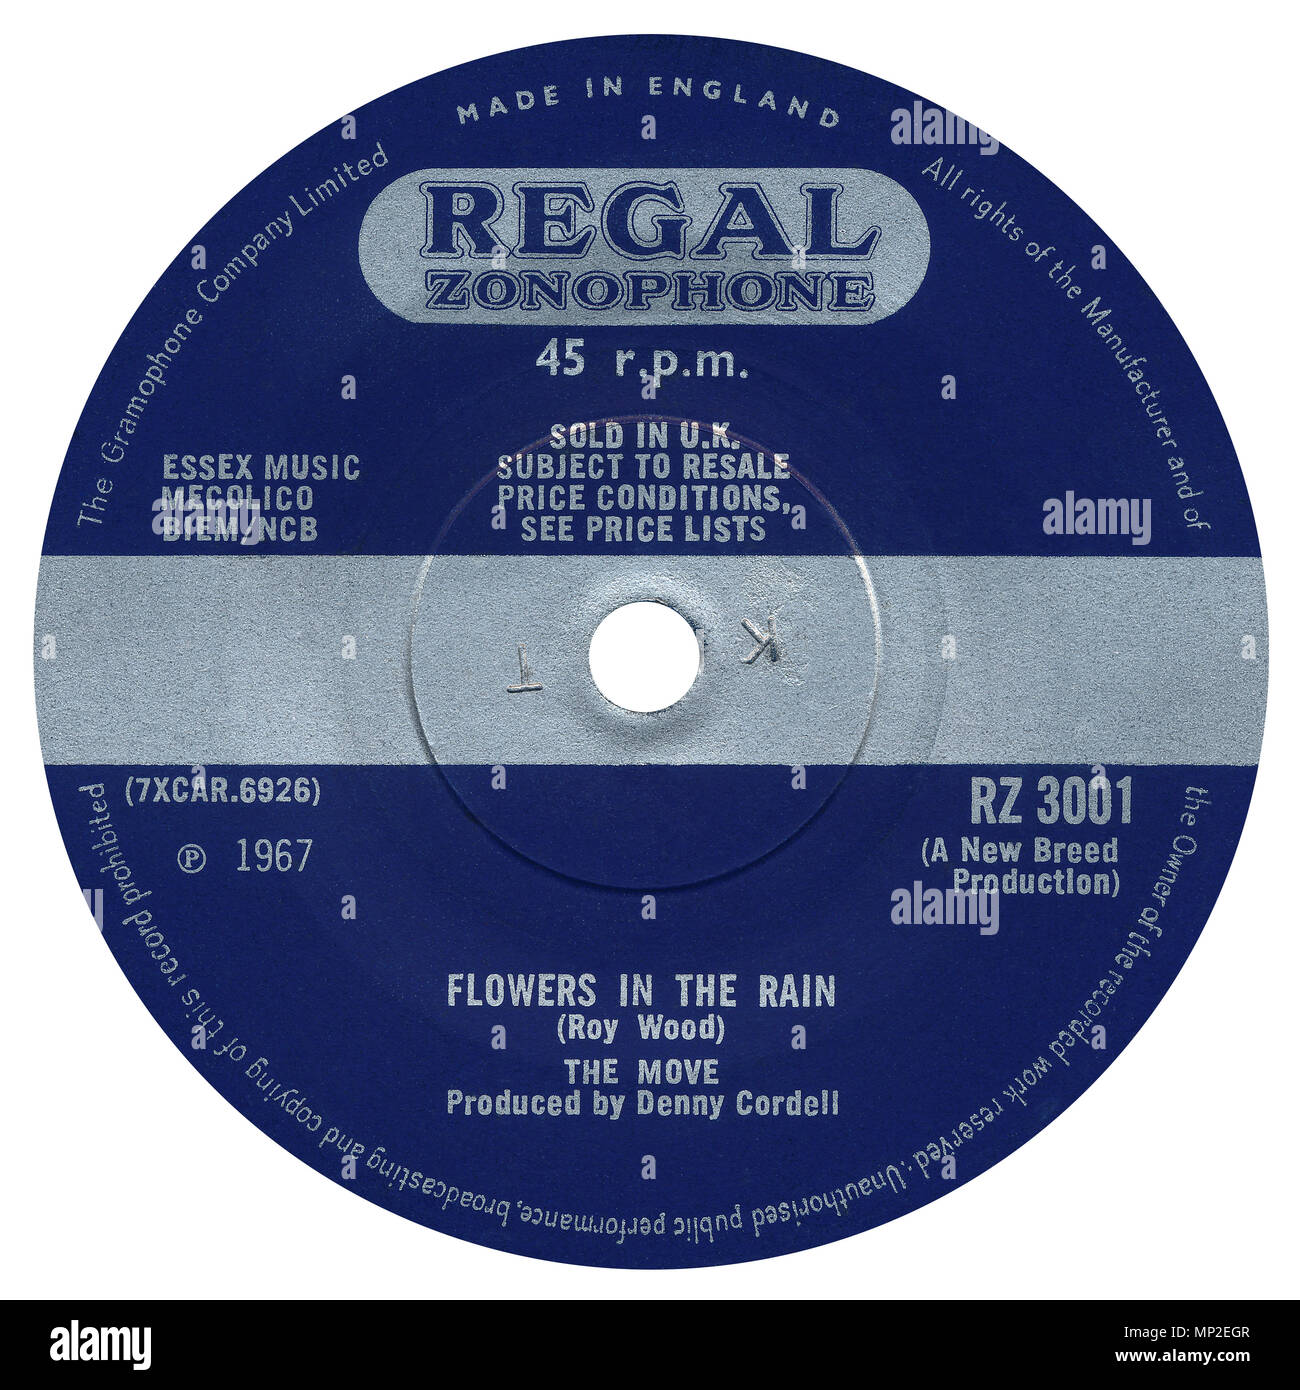 45 RPM record label of Flowers In The Rain by The Move on the Regal Zonophone label from 1967. Written by Roy Wood and produced by Denny Cordell. - Stock Image